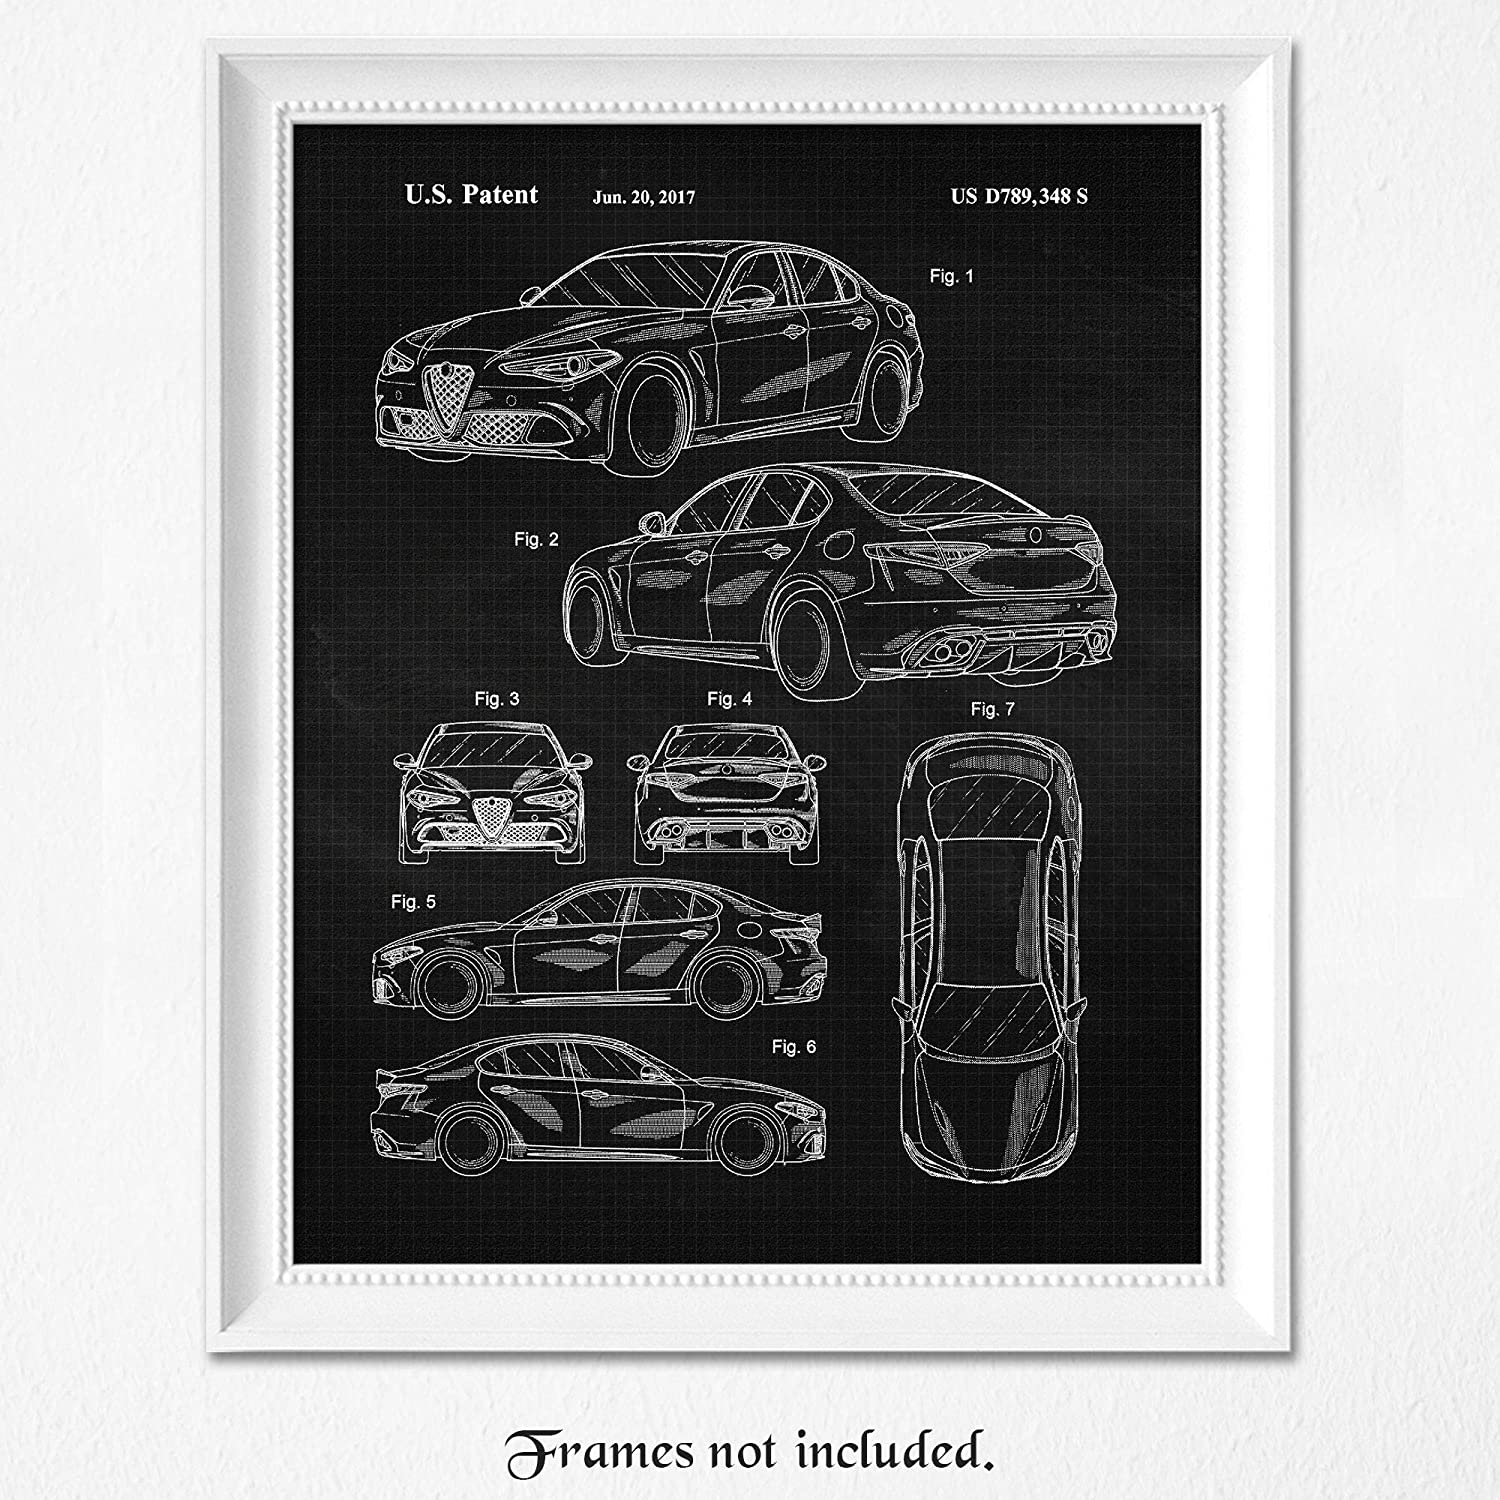 Vintage Alfa Romeo Giulia B&W Patent Poster Prints, Set of 1 (8x10) Unframed Photo, Wall Art Decor Gifts Under 15 for Home, Office, Man Cave, College Student, Teacher, Coach, Italy Cars & Coffee Fan